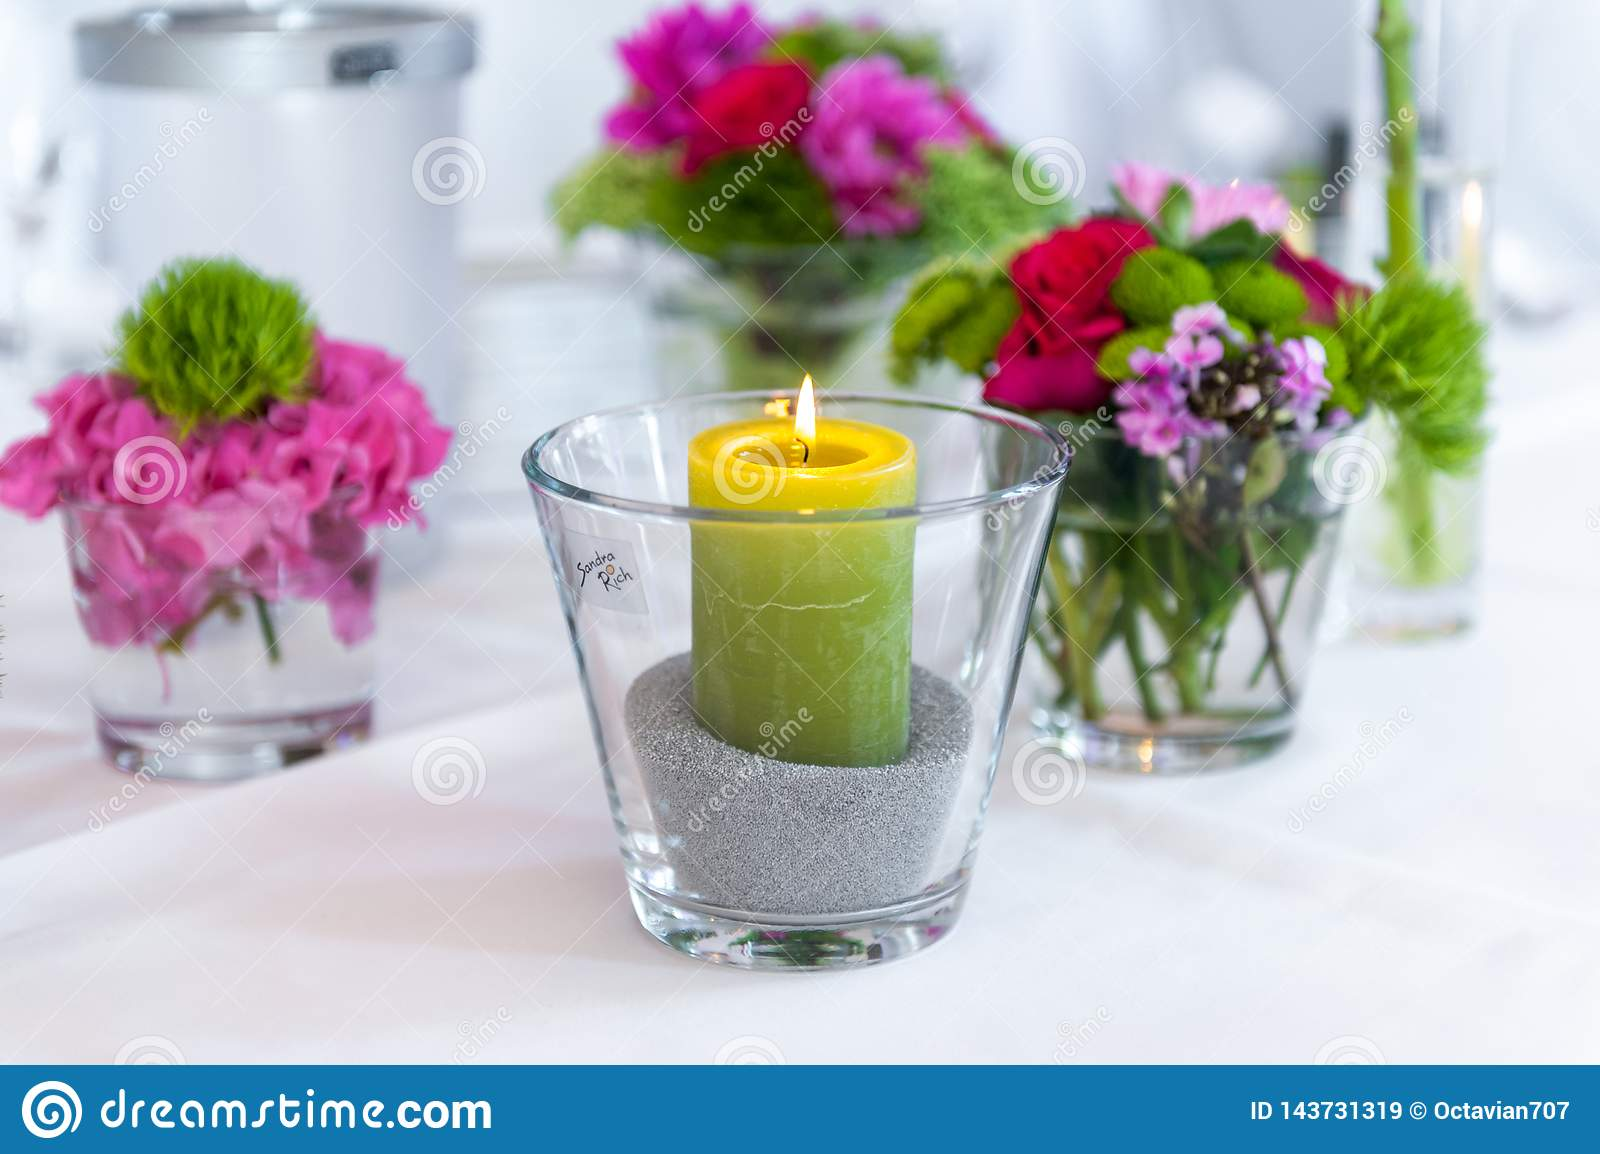 Candle in glass on white table